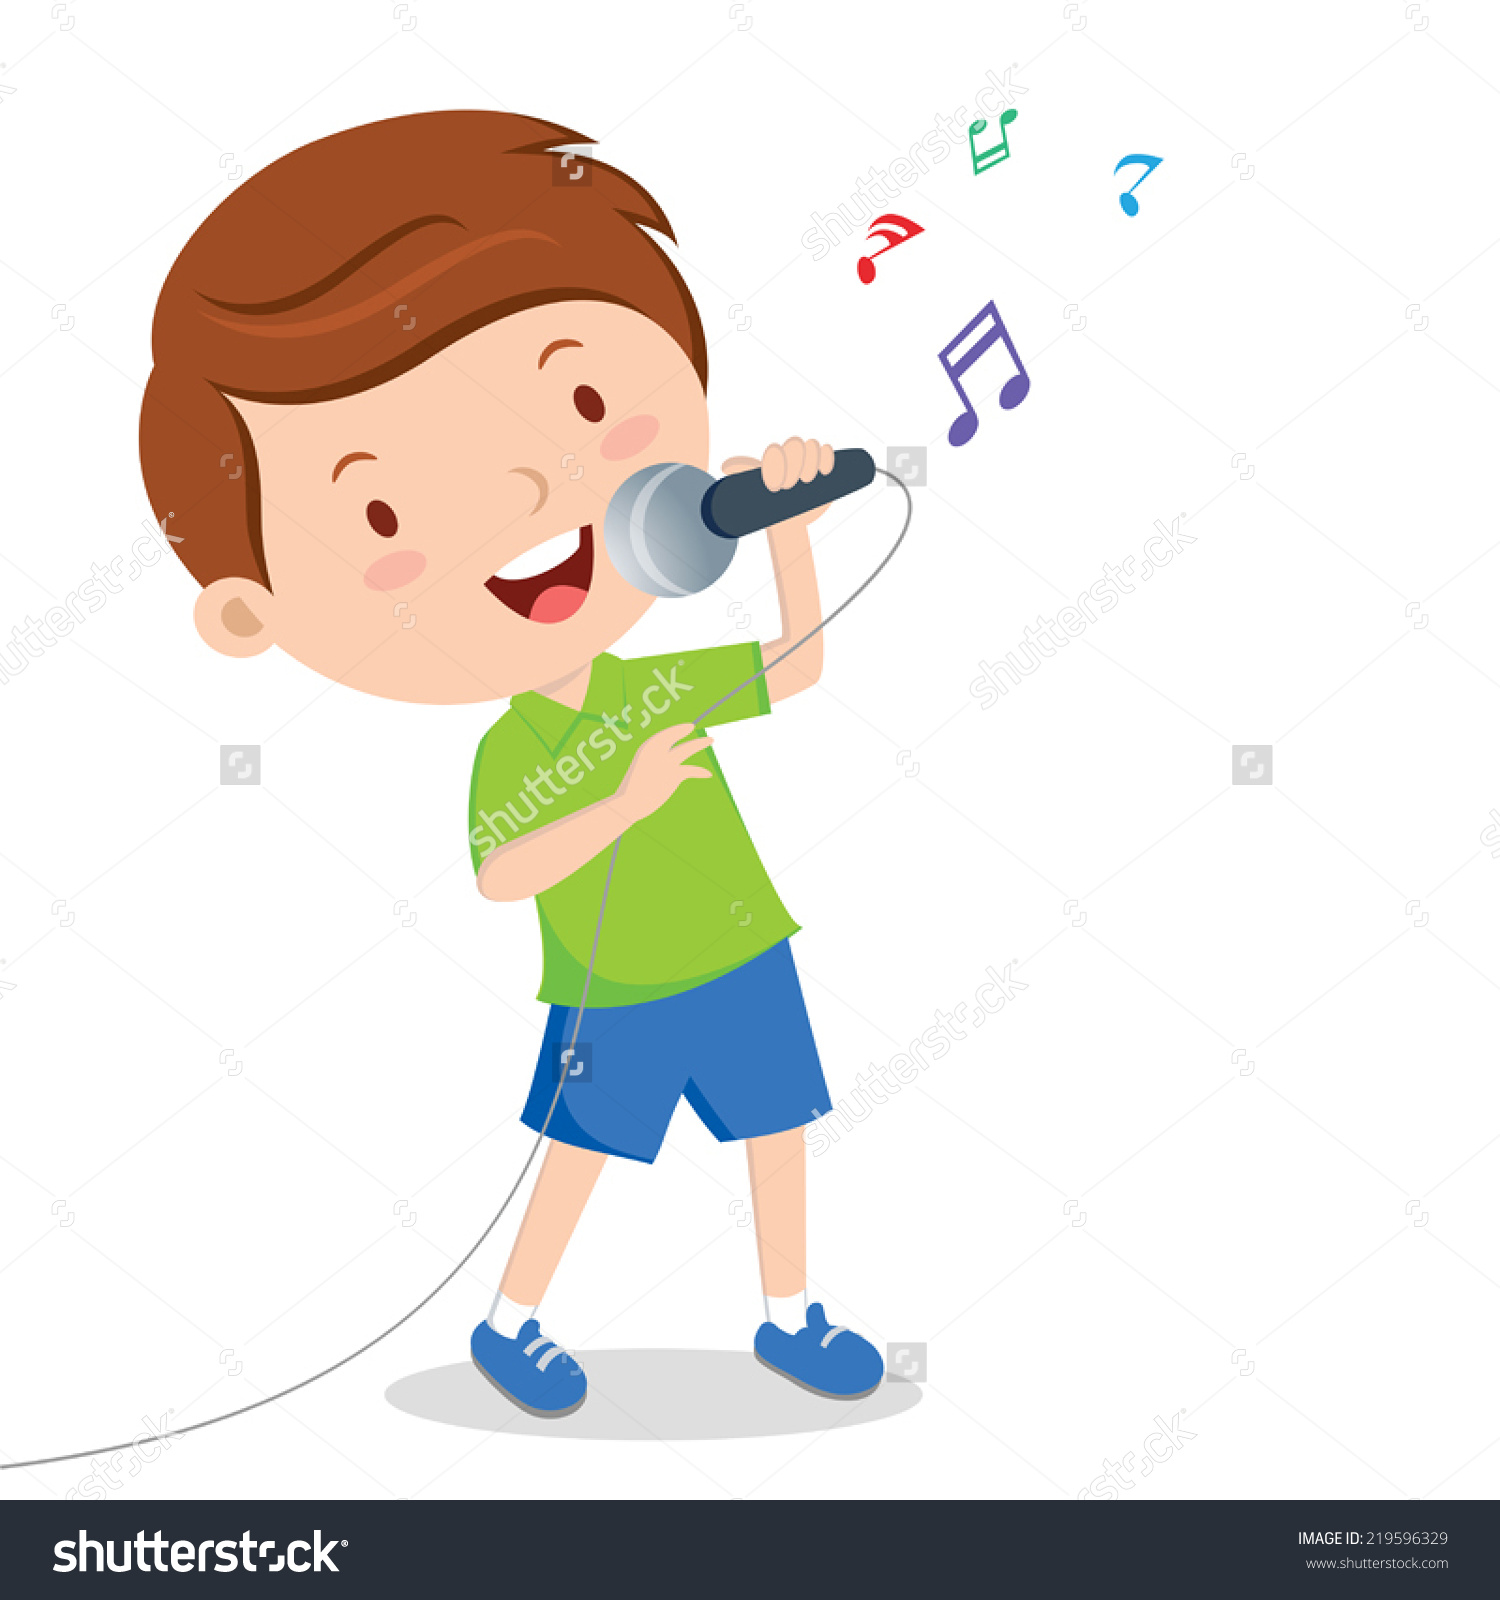 Free download best on. Singer clipart sing a long